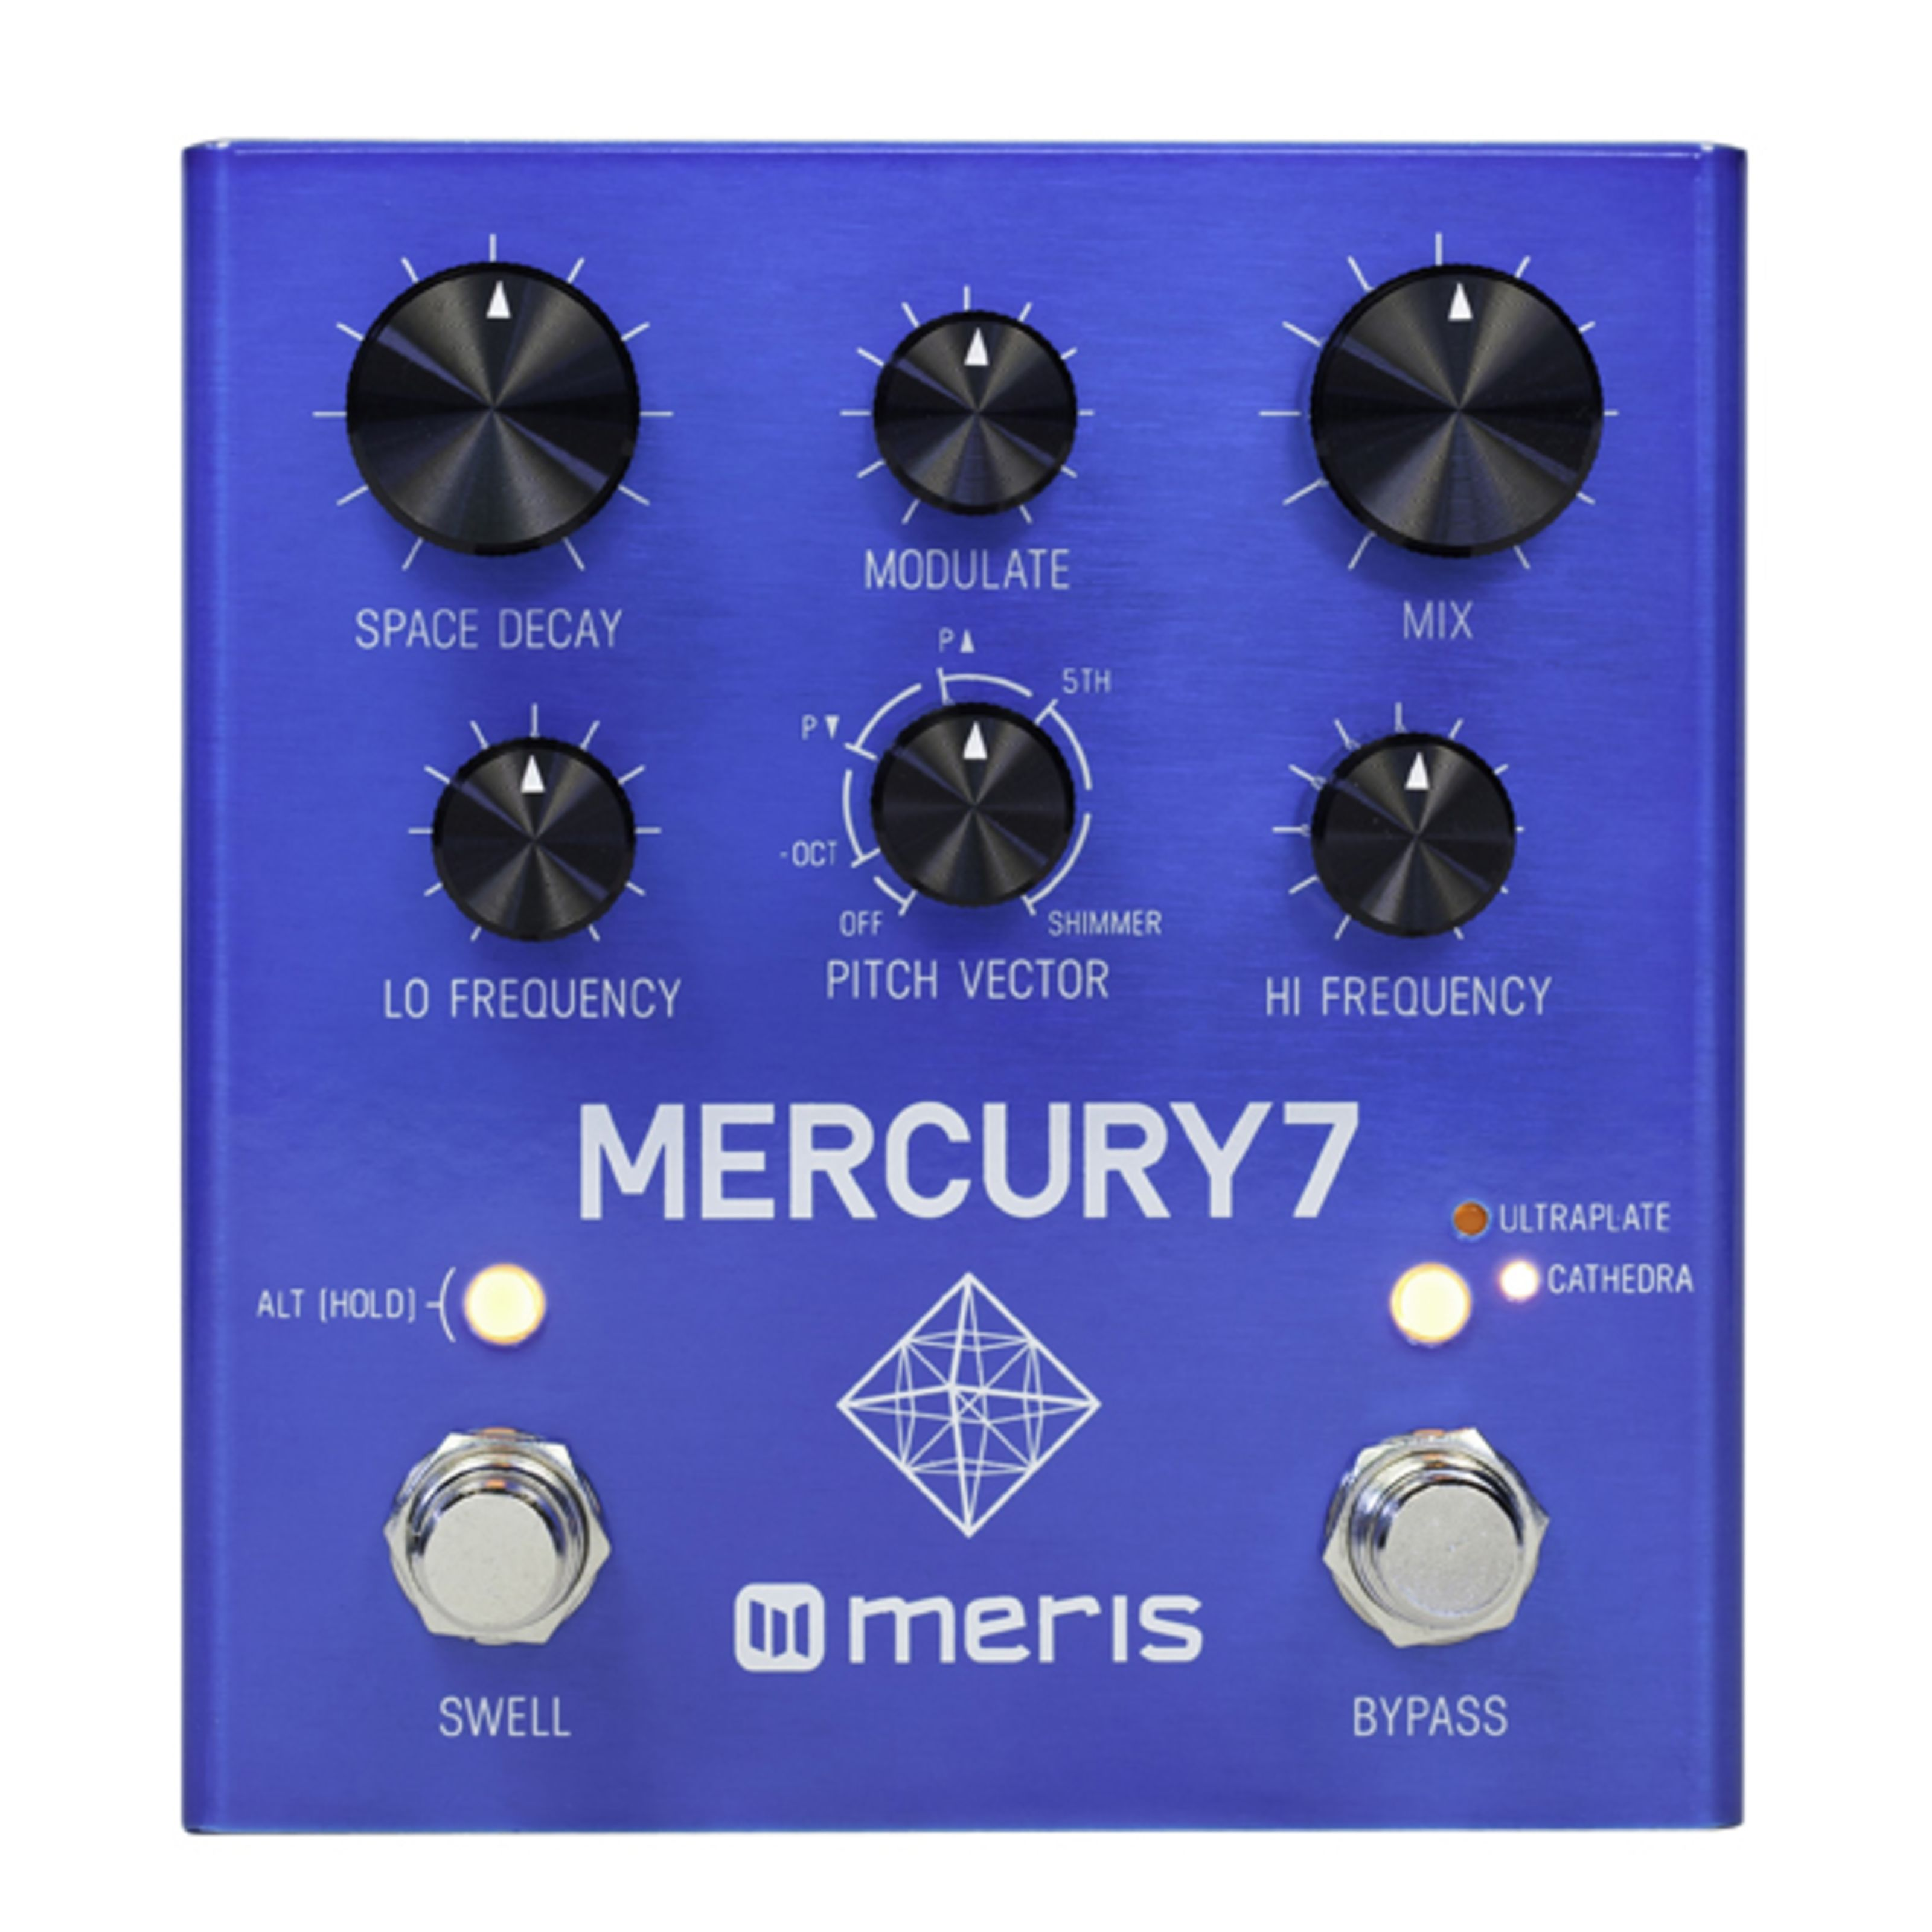 Meris - Mercury 7 MR MERCURY 7